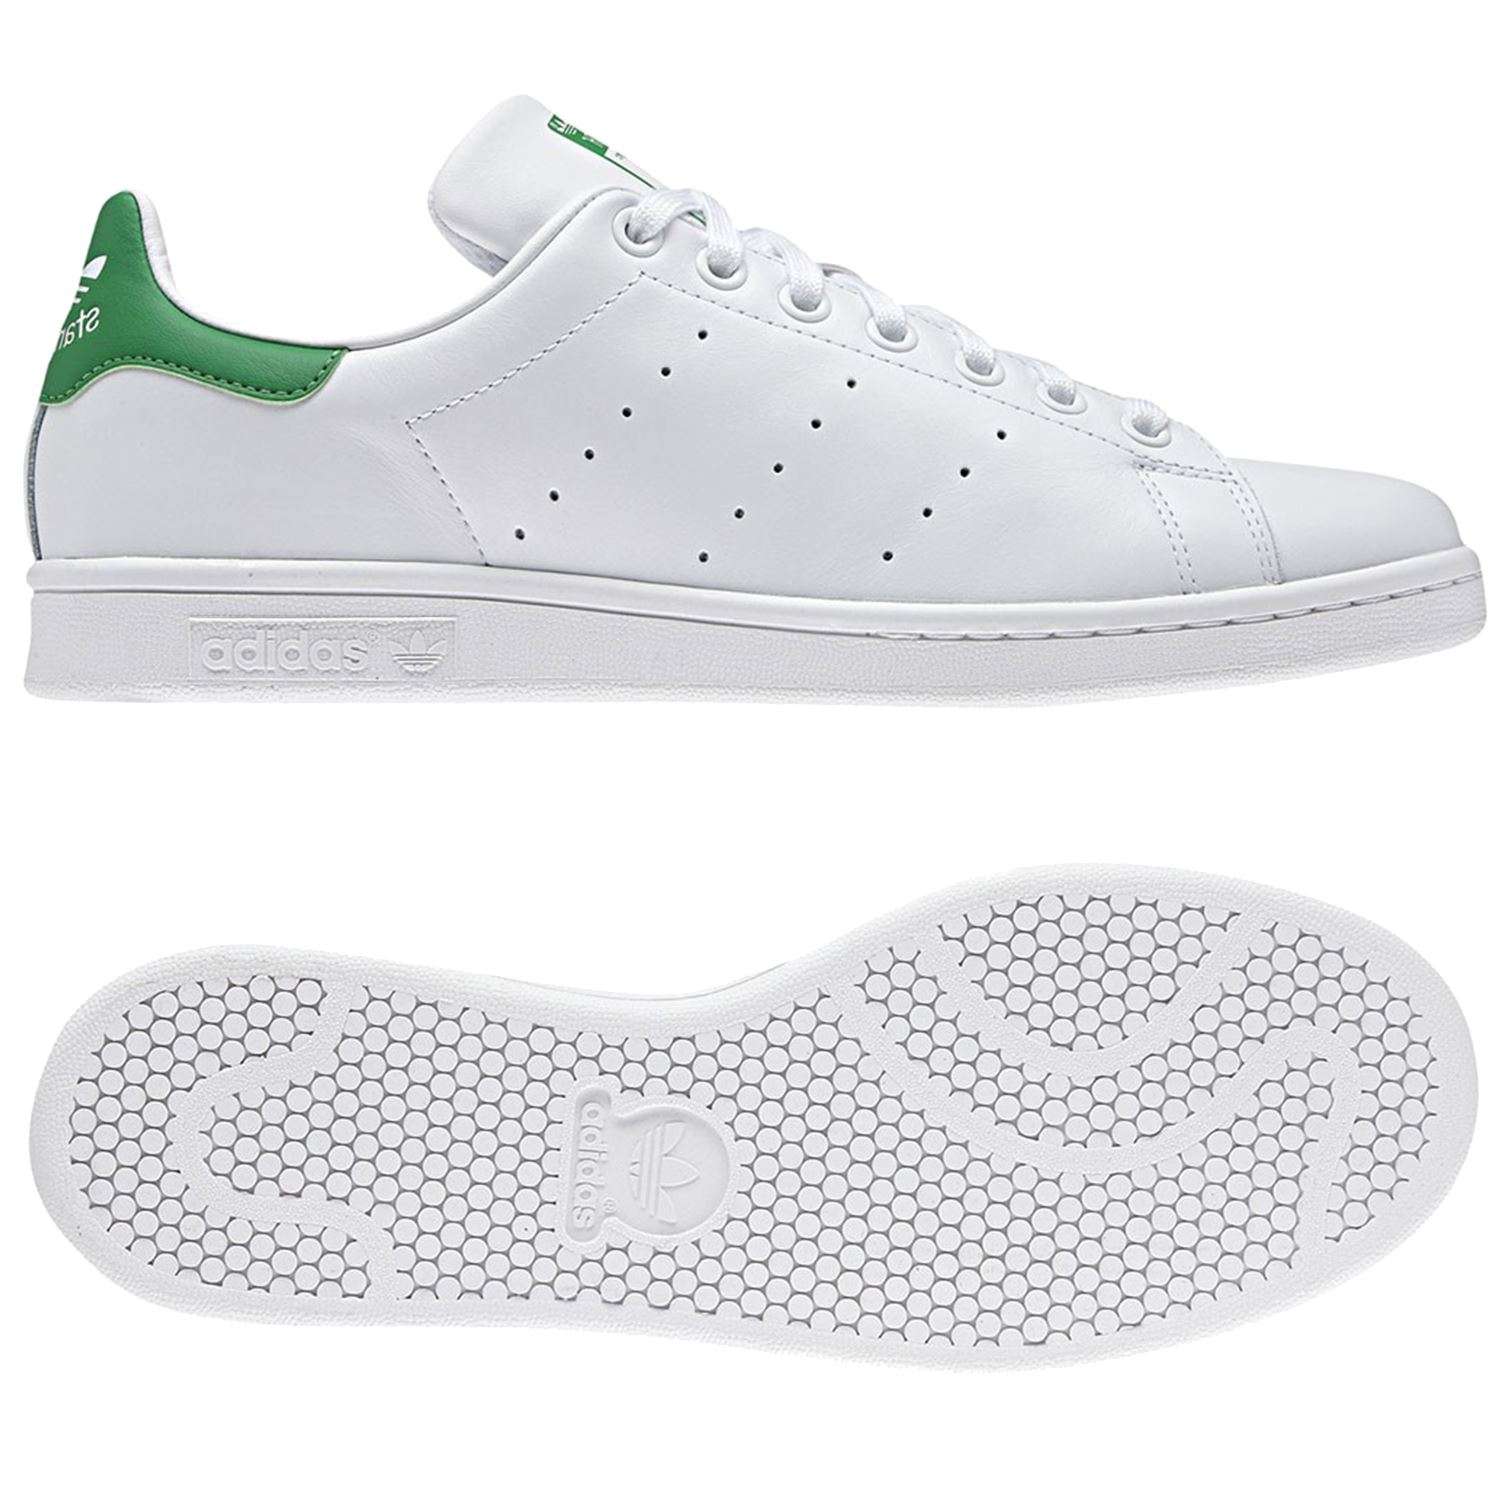 adidas Stan Smith Chaussures Retro Basket Blanc Fairway M20324 Tennis